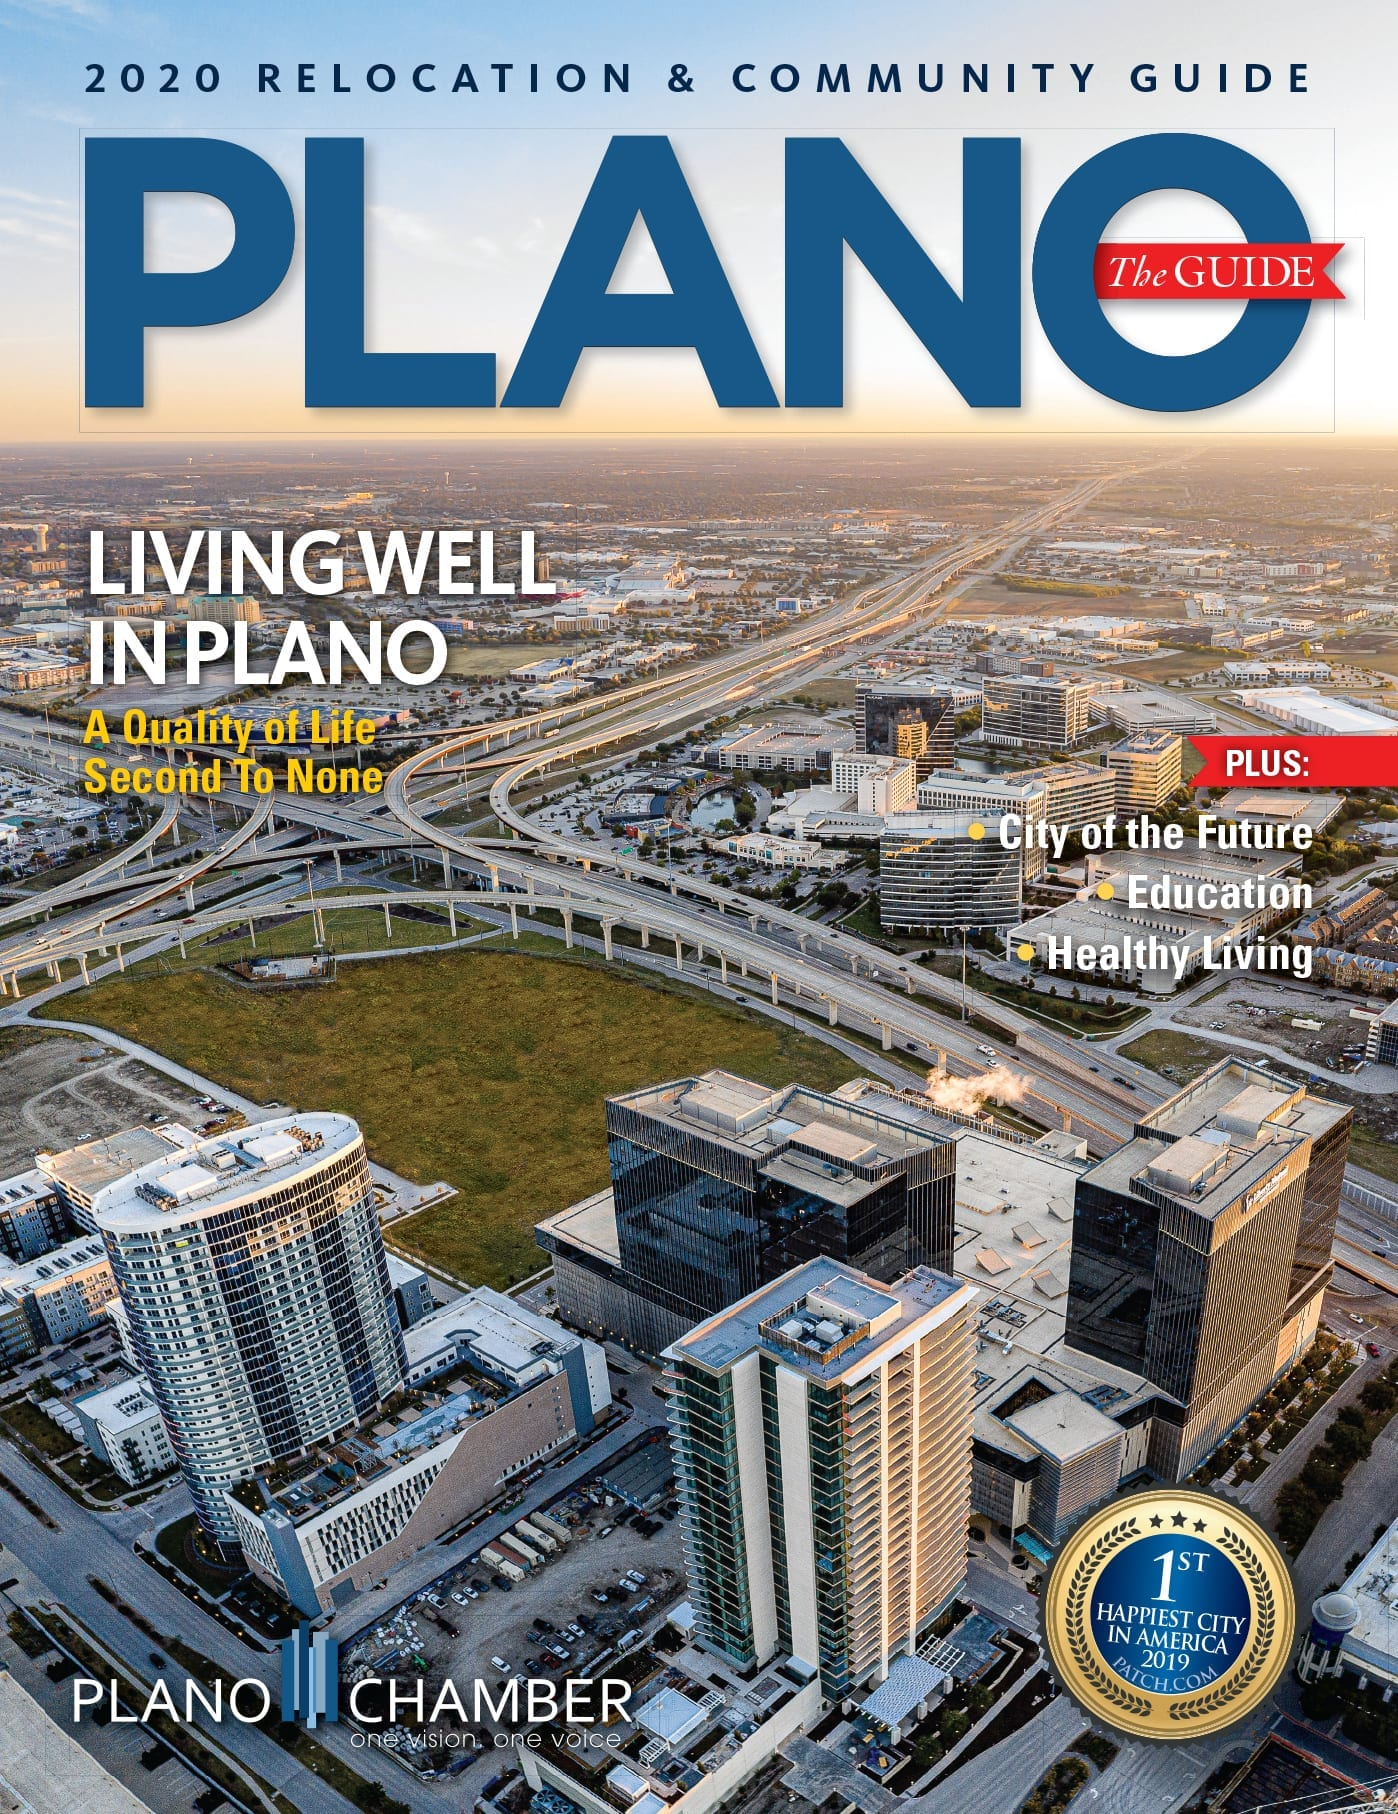 Plano Chamber of Commerce Relocation Guide and Business Directory